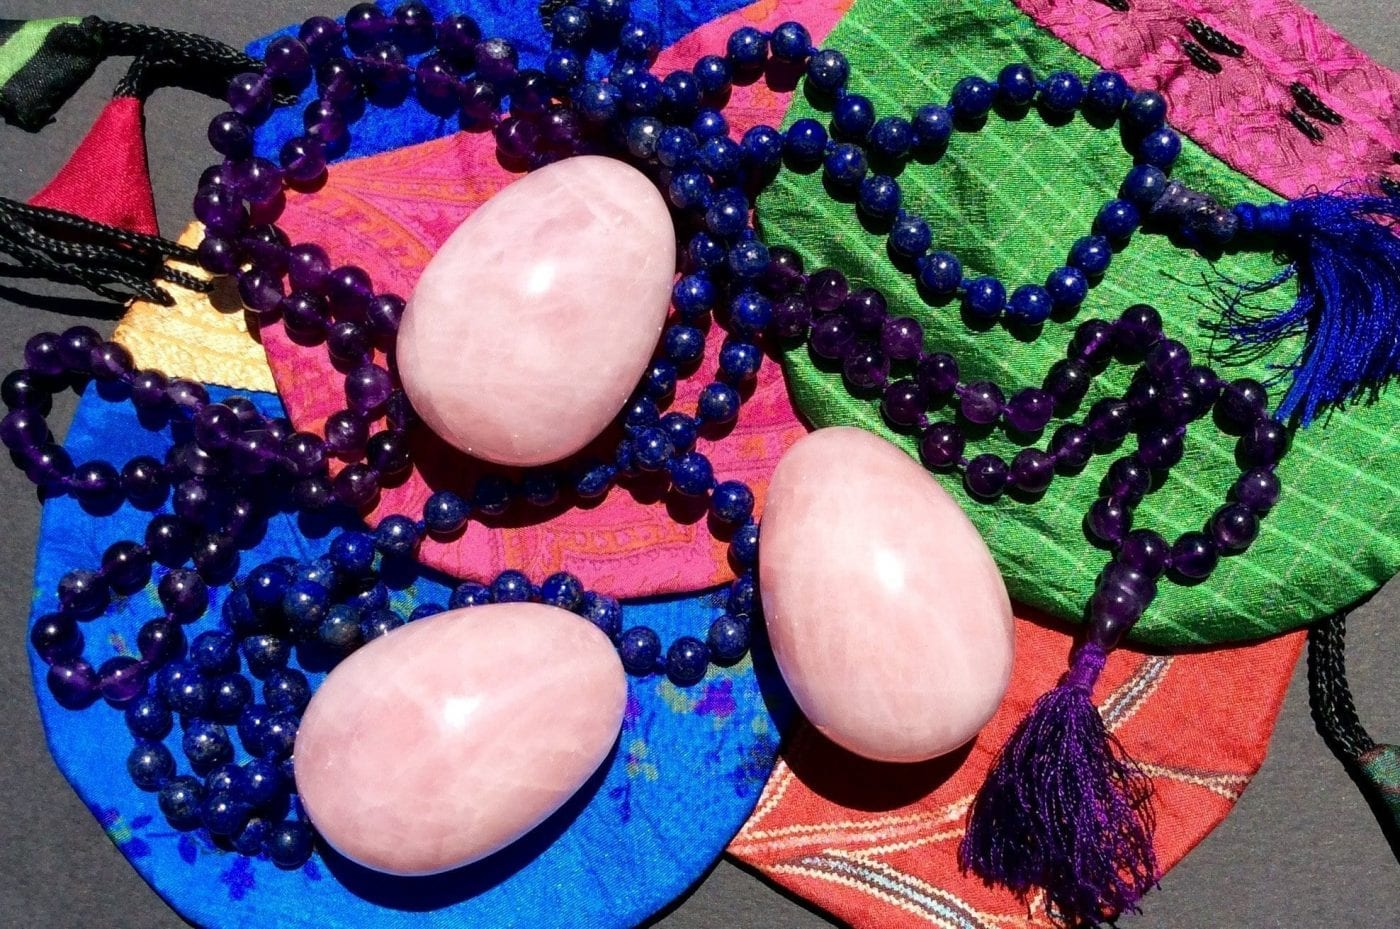 3 eggs, mala, and silk pouches